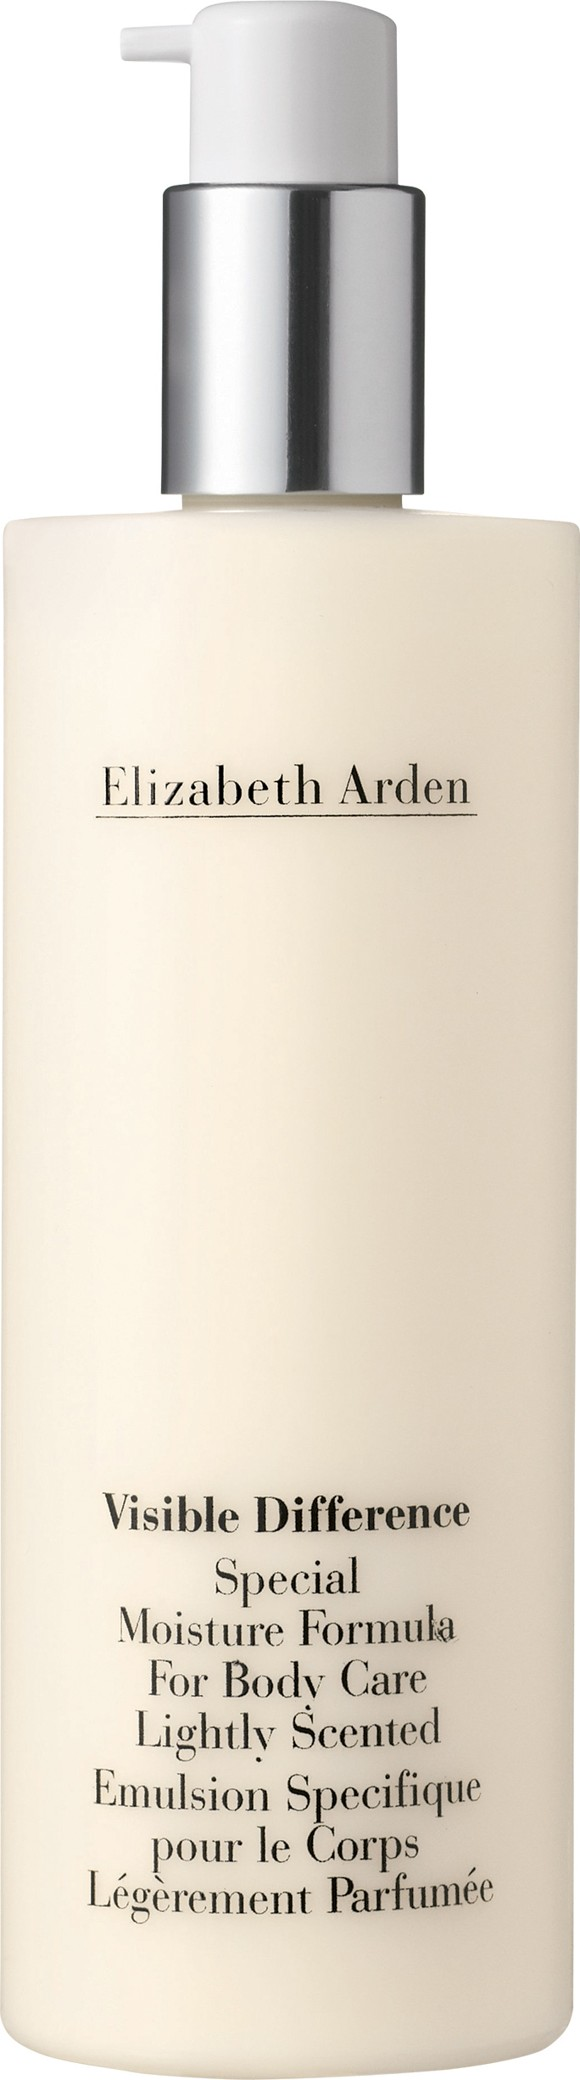 Elizabeth Arden - Visible Difference Body Care Special Moisture Formula 300 ml